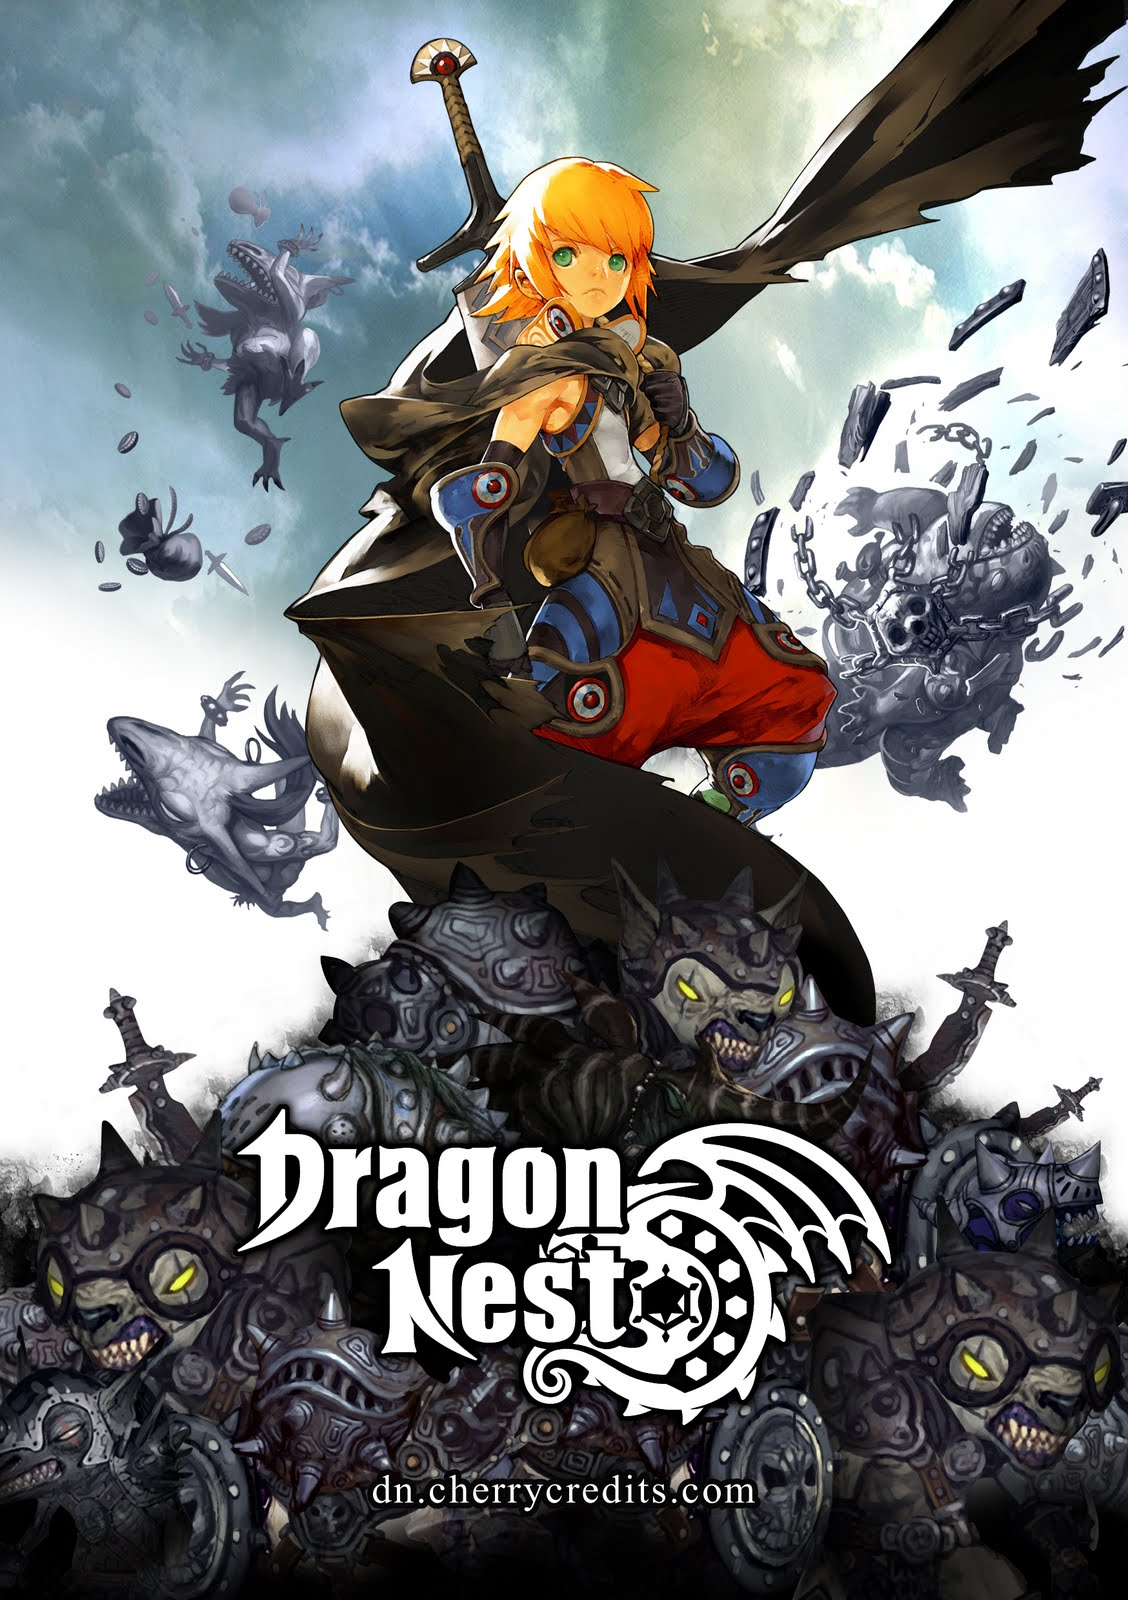 dragon nest Dragon nest m hack is here with the most wanted features such as diamonds and gold generator these cheats will boost your gaming to the next level, so try now and have fun.